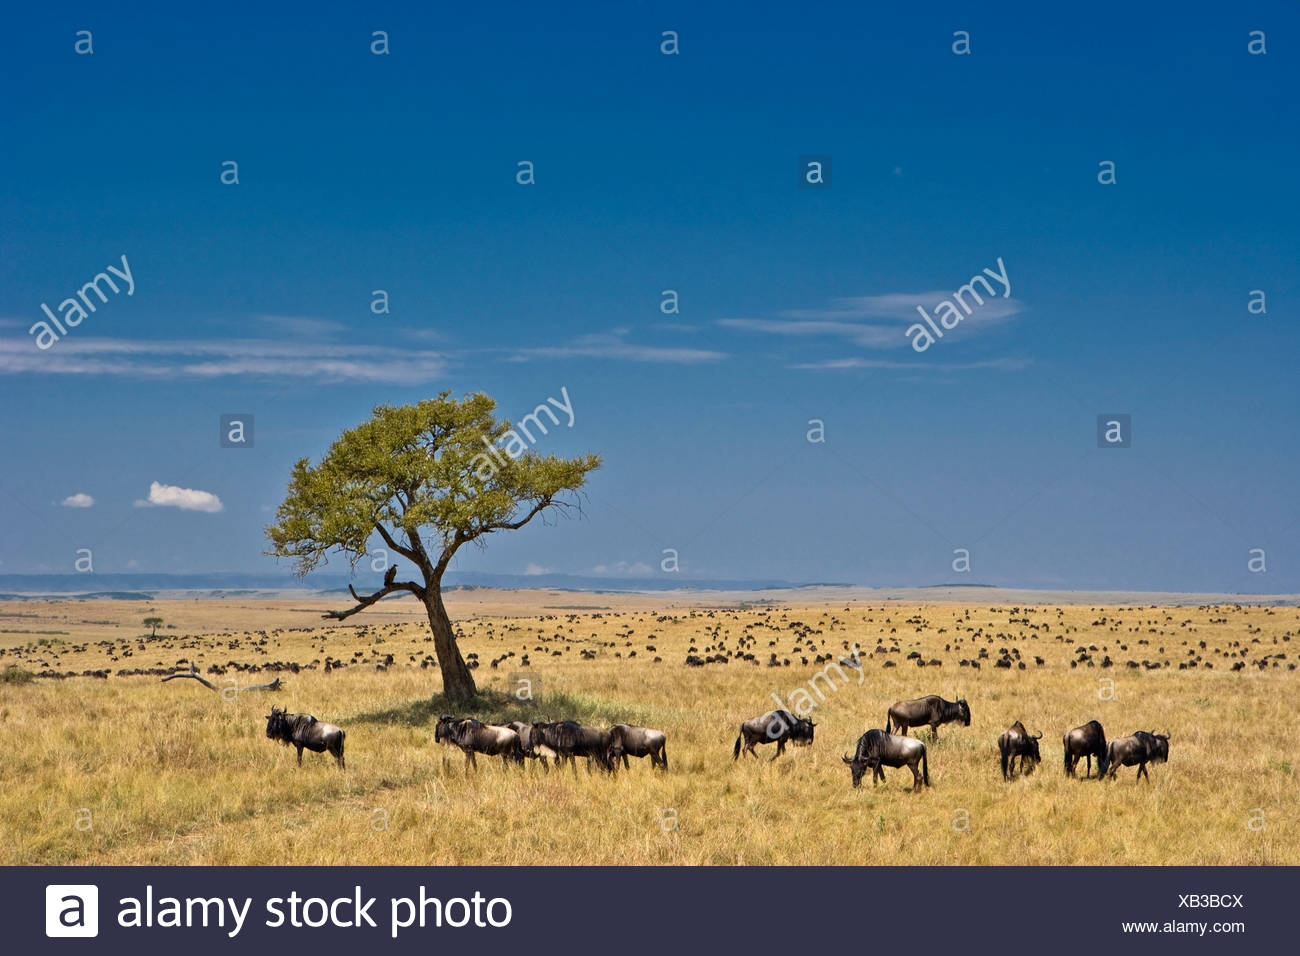 Common Wildebeest (Connochaetes taurinus) on plains during migration. Masai Mara. Kenya. Africa - Stock Image